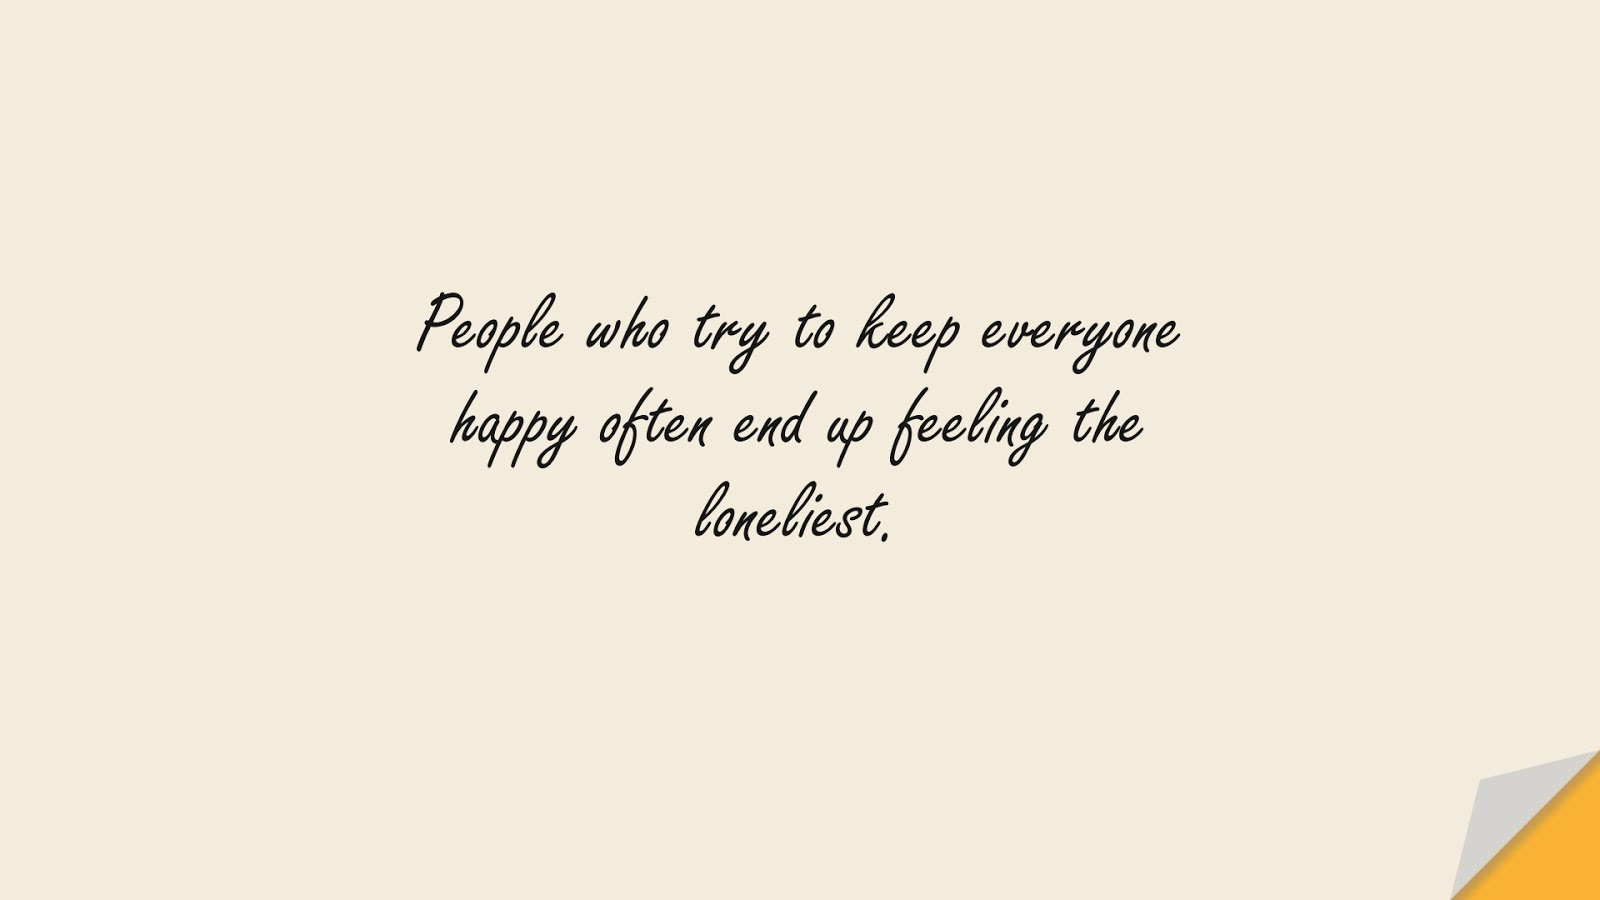 People who try to keep everyone happy often end up feeling the loneliest.FALSE